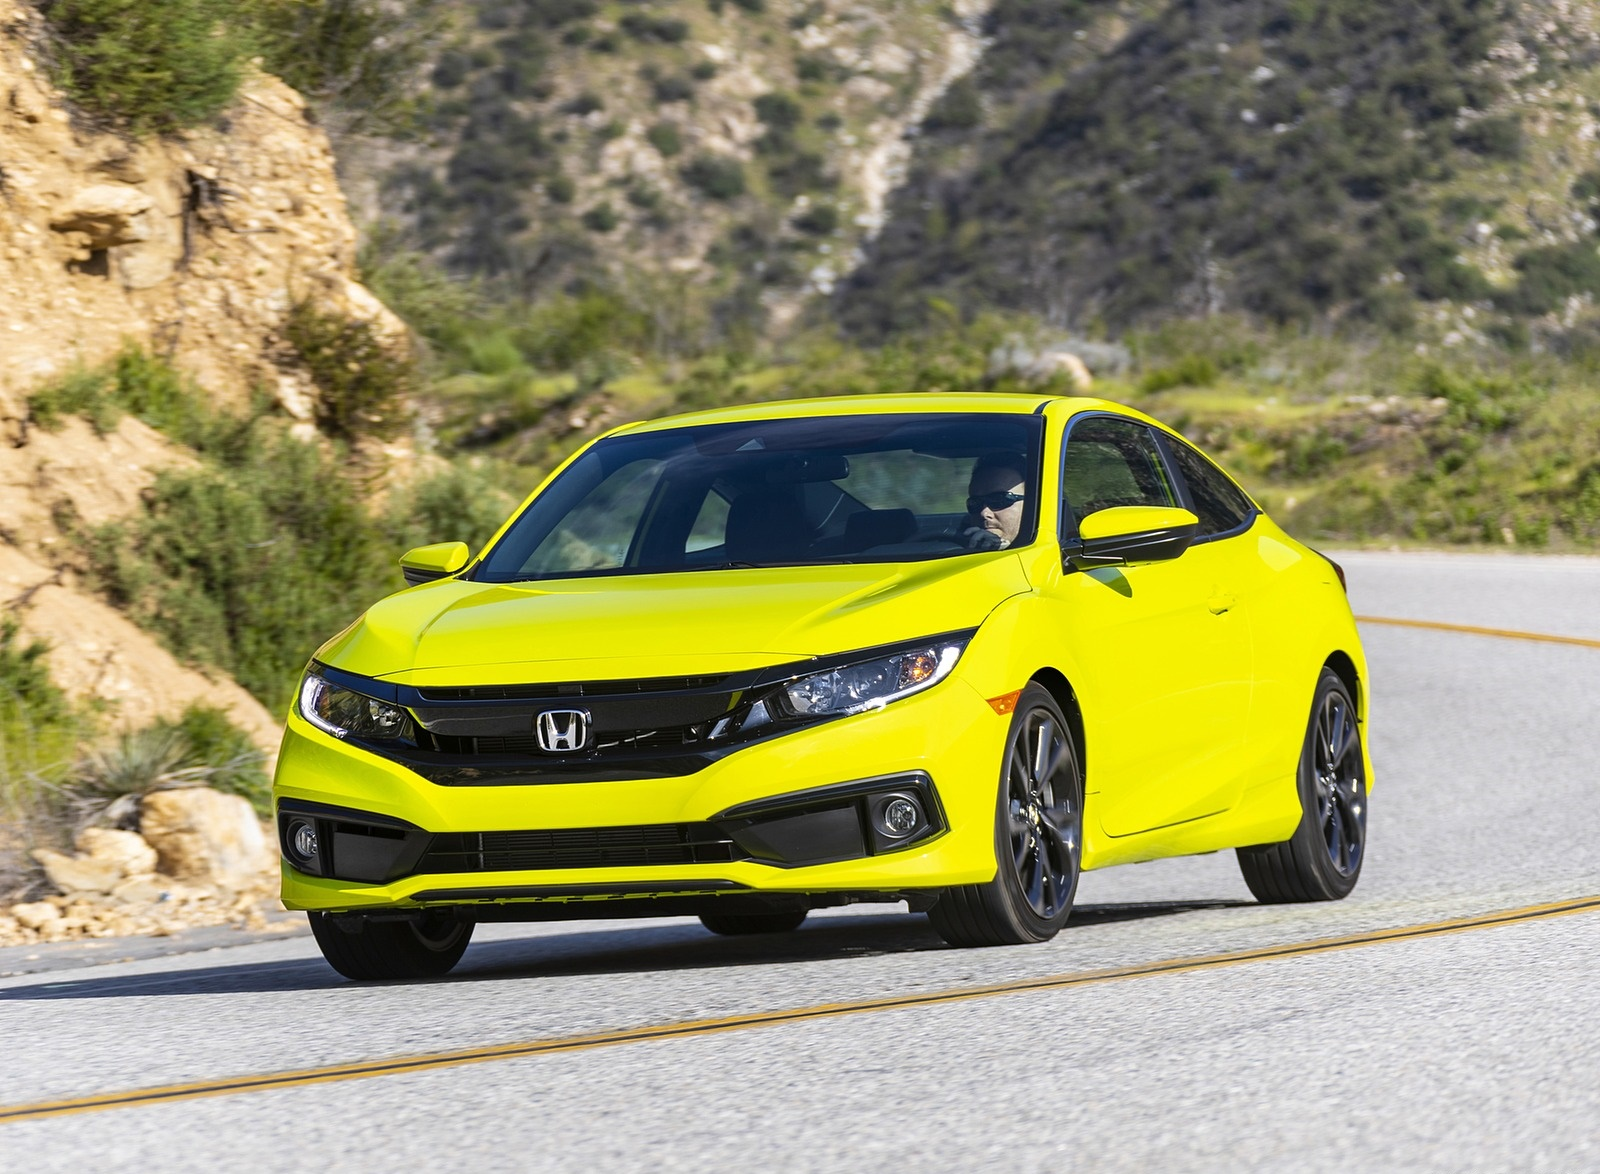 Is bmp (bmp) or jpeg (jpg). 2020 Honda Civic Coupe Wallpapers 67 Hd Images Newcarcars